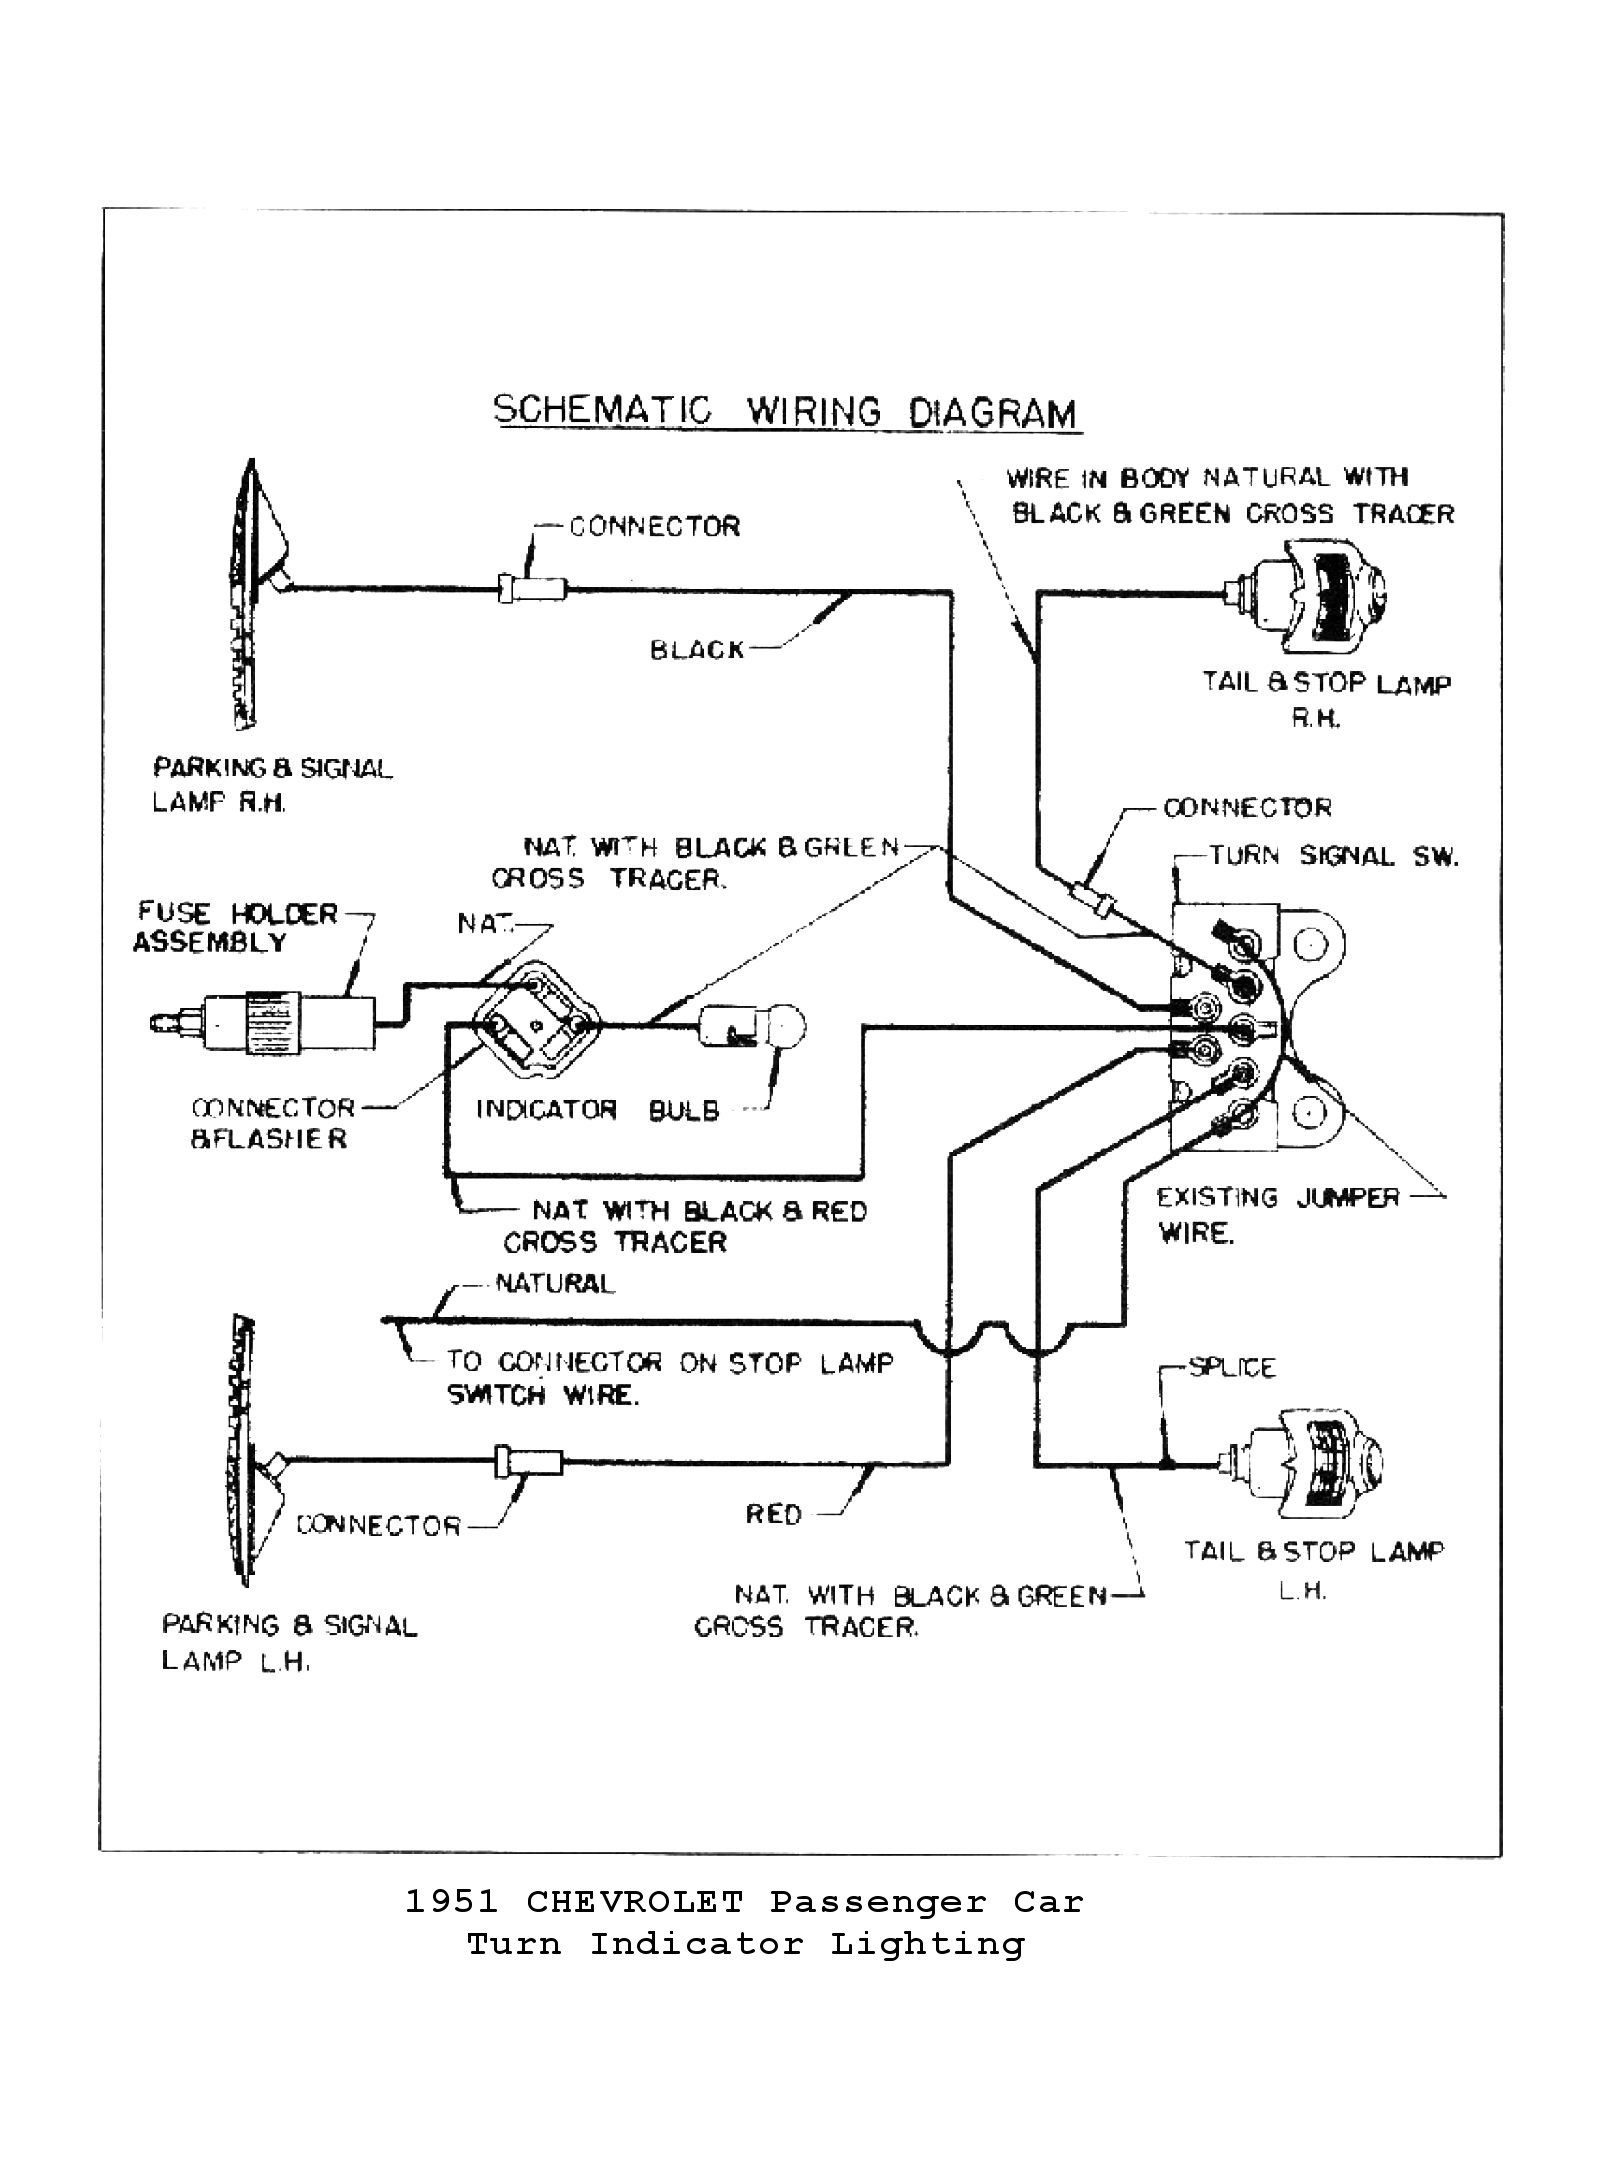 Chevy Wiring Diagrams Wiring A Non-Computer 700R4 1951 Olds Wiring Diagram